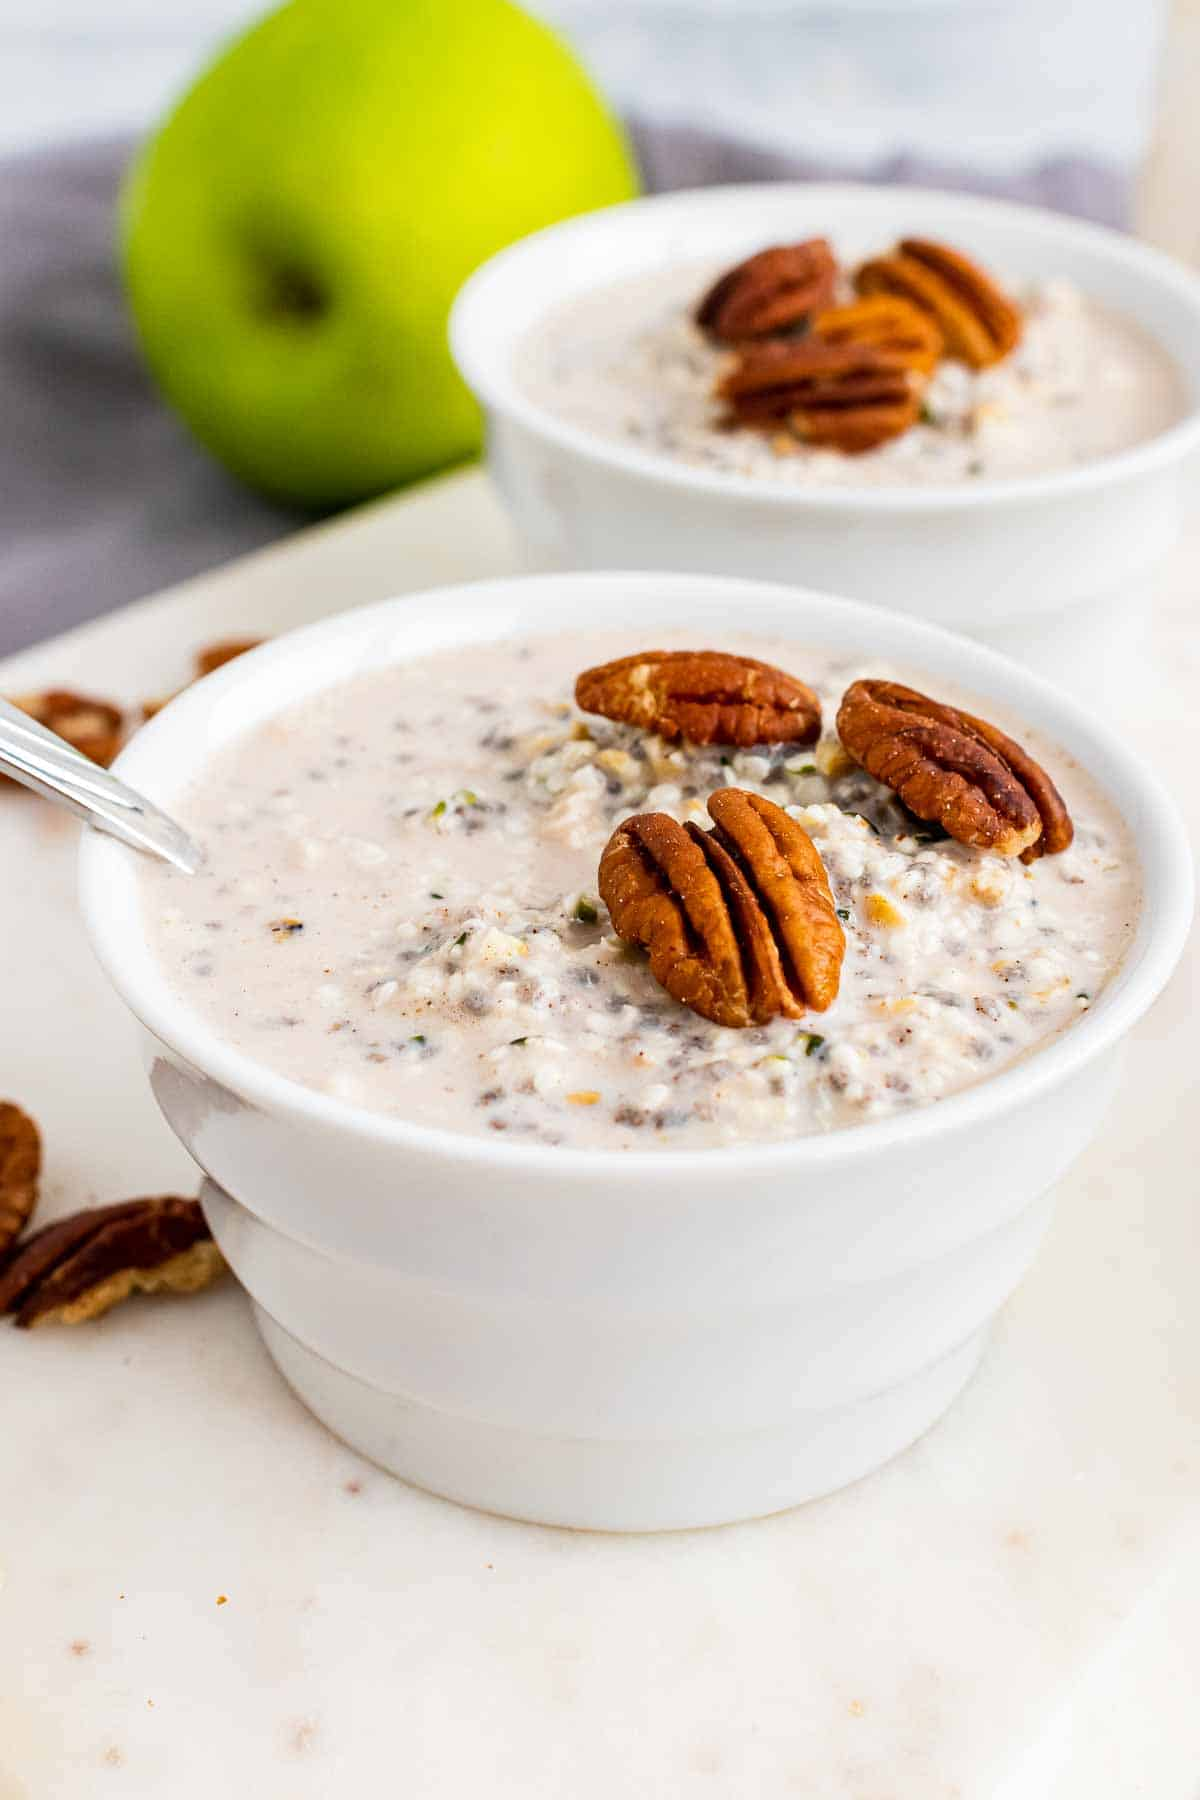 Finished oats topped with pecans in two white bowls on a white serving tray